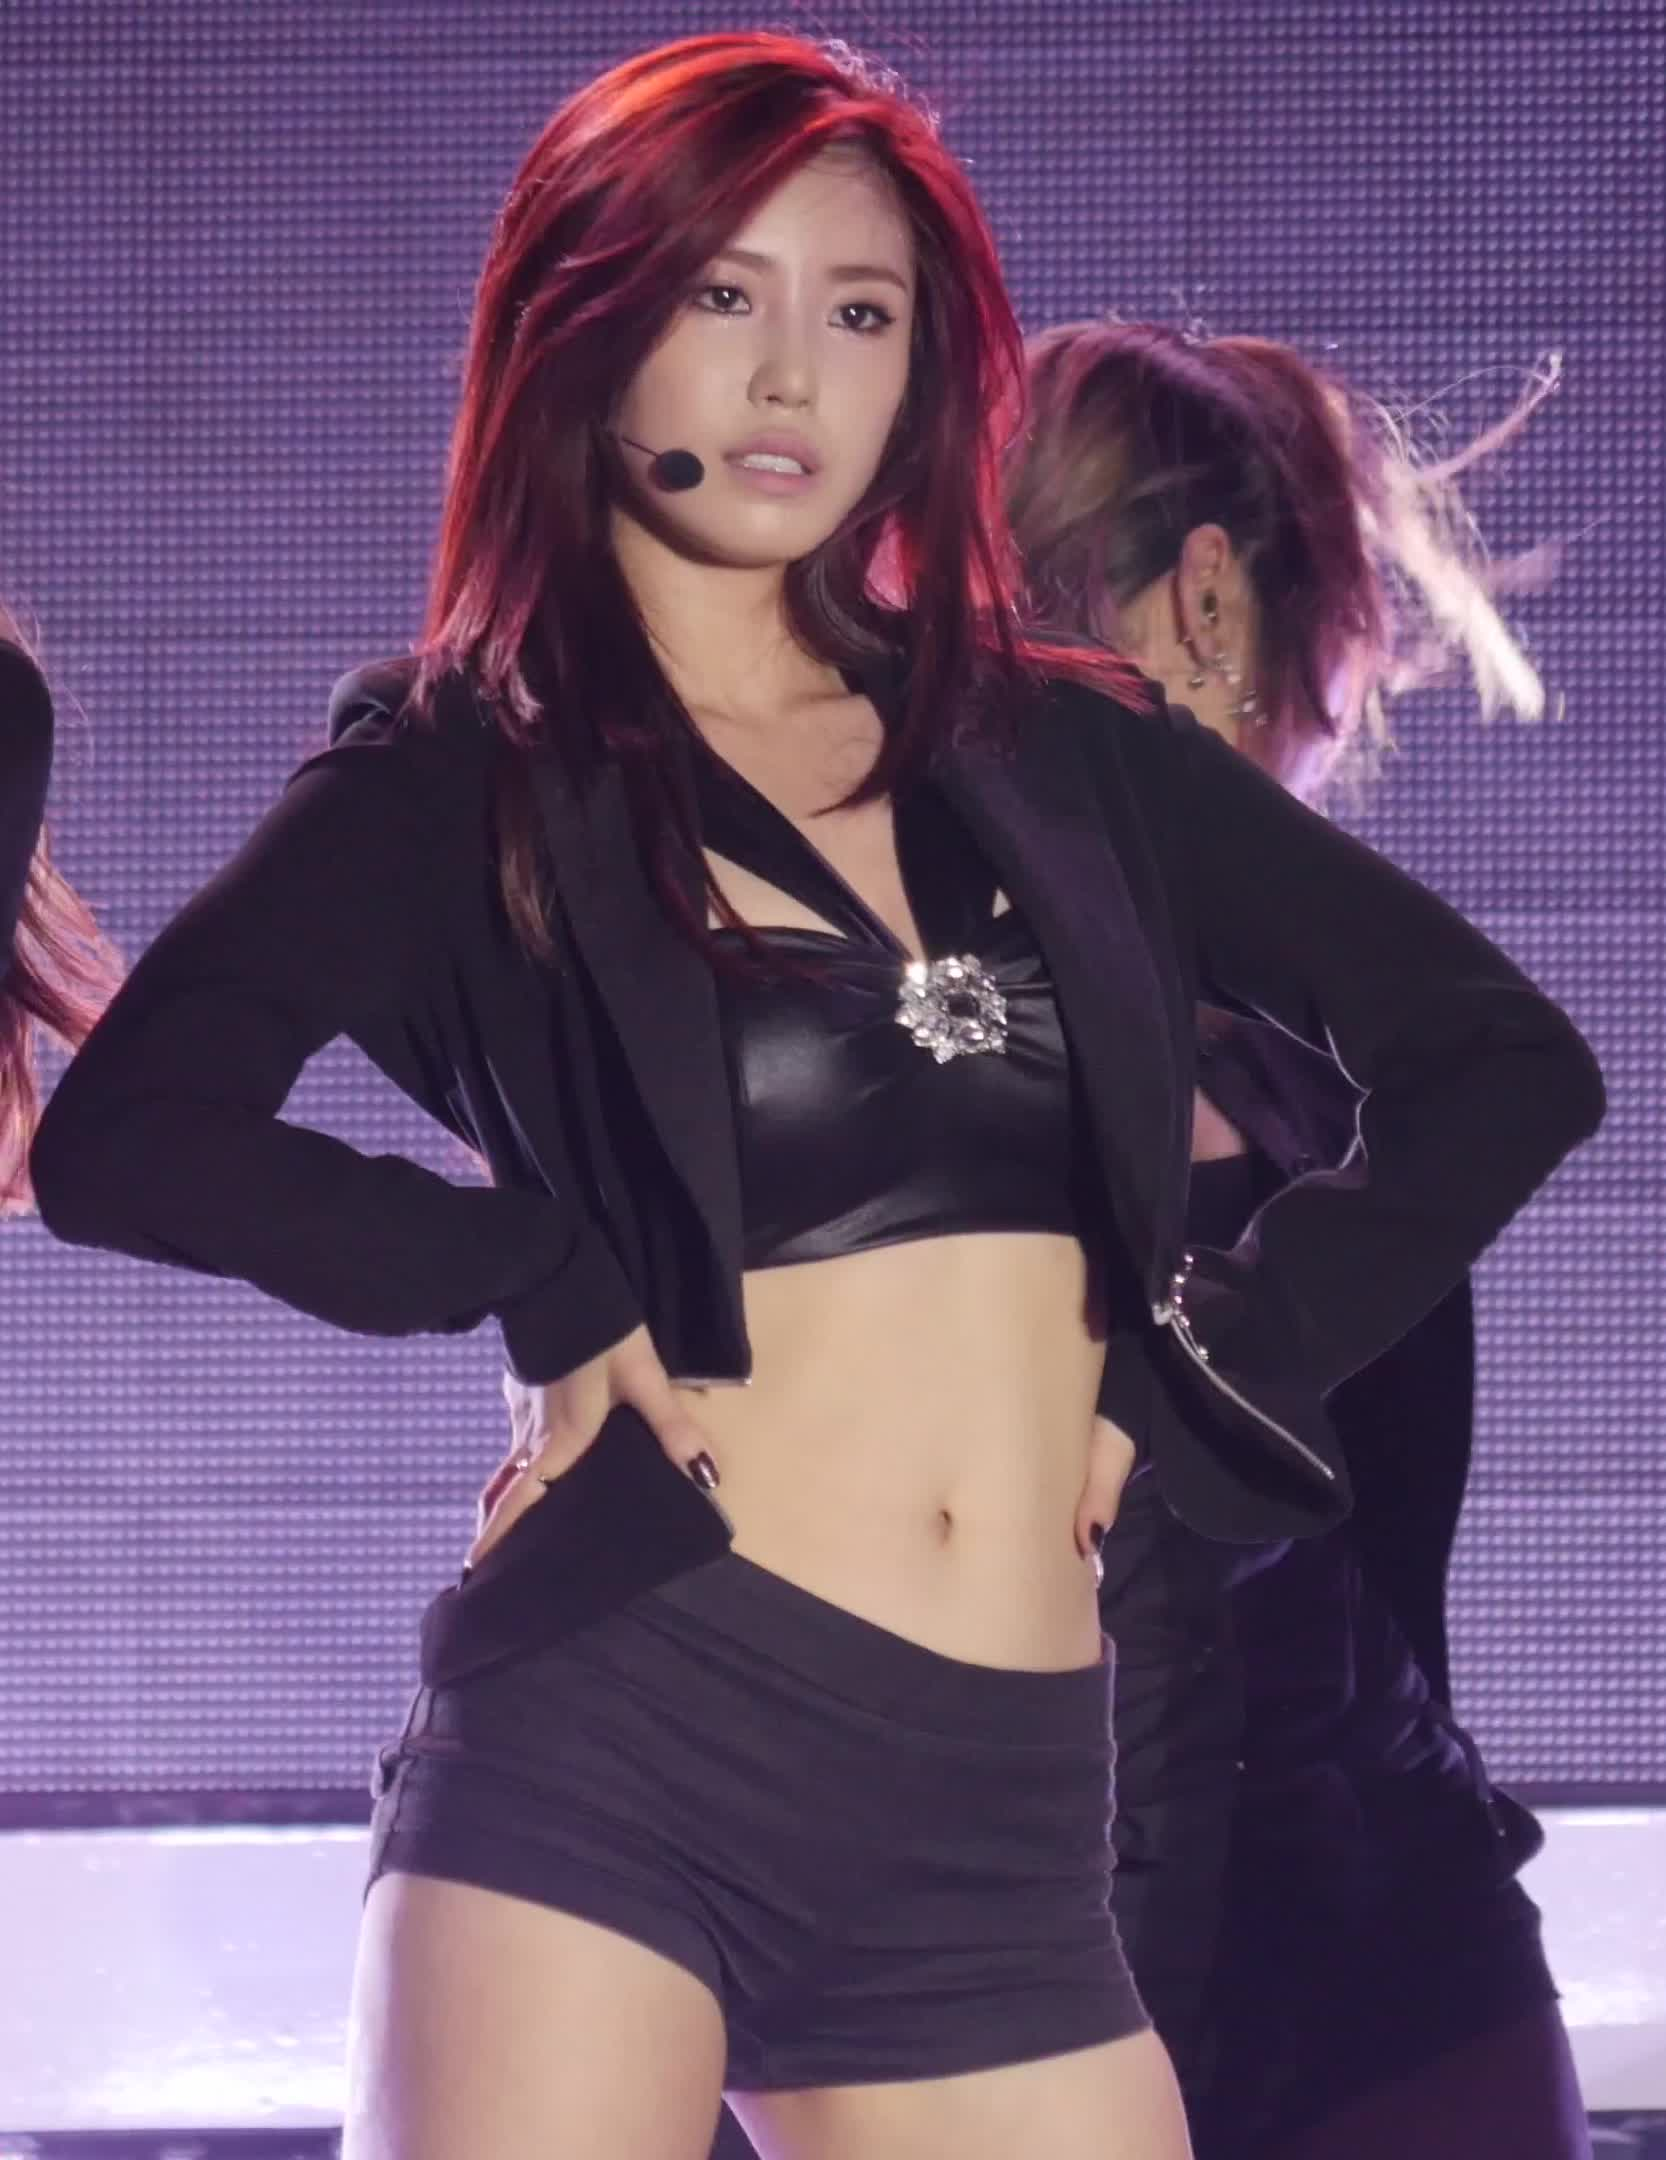 Jeong Hyosung Gifs Search | Search & Share on Homdor